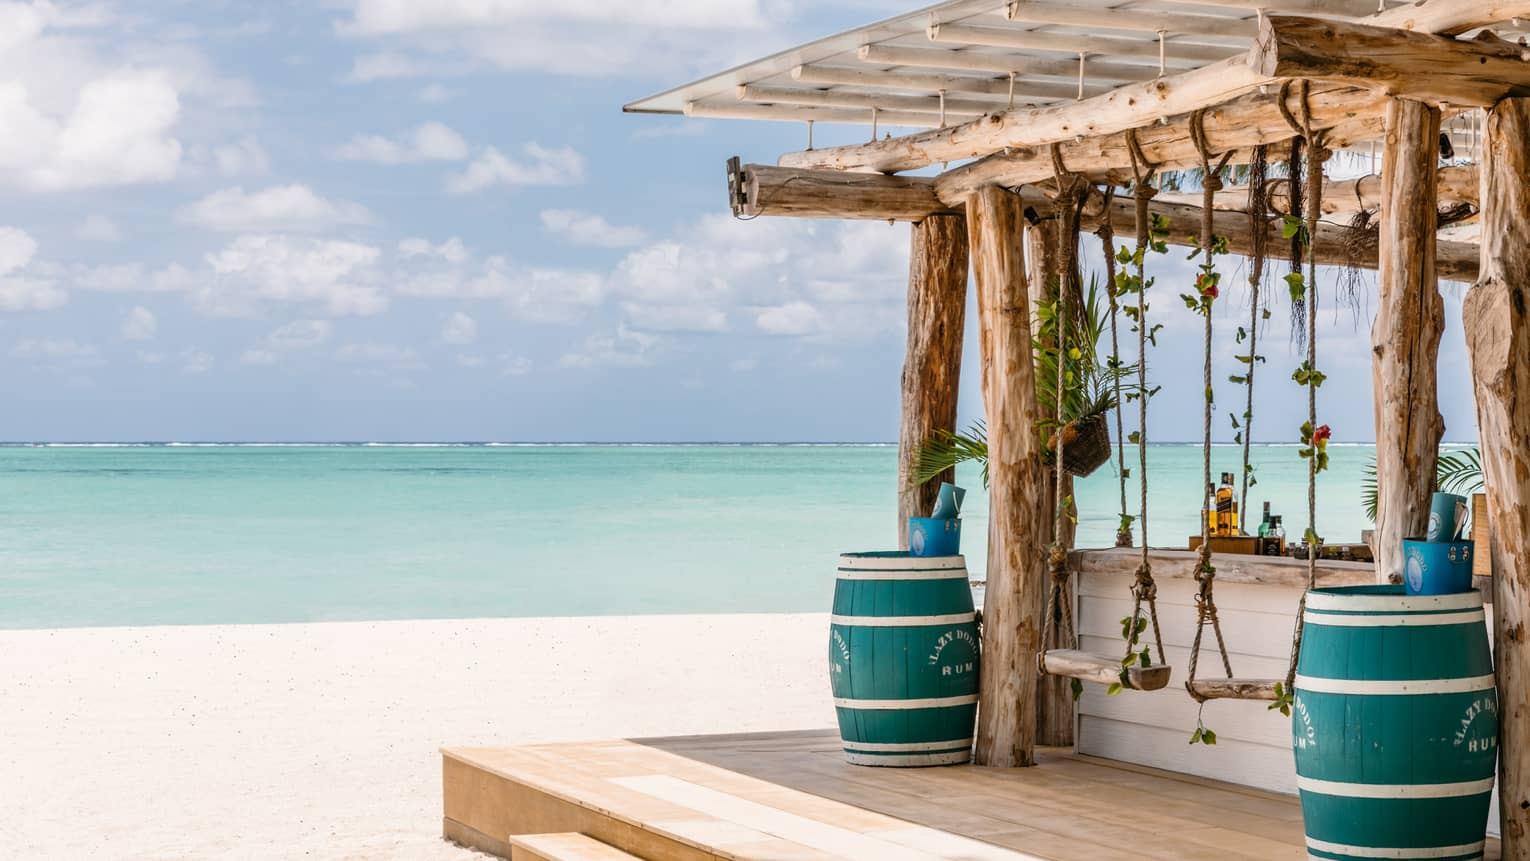 Wooden bar with pergola, two blue barrels, two swings on beach, aqua views, cloud dotted blue sky